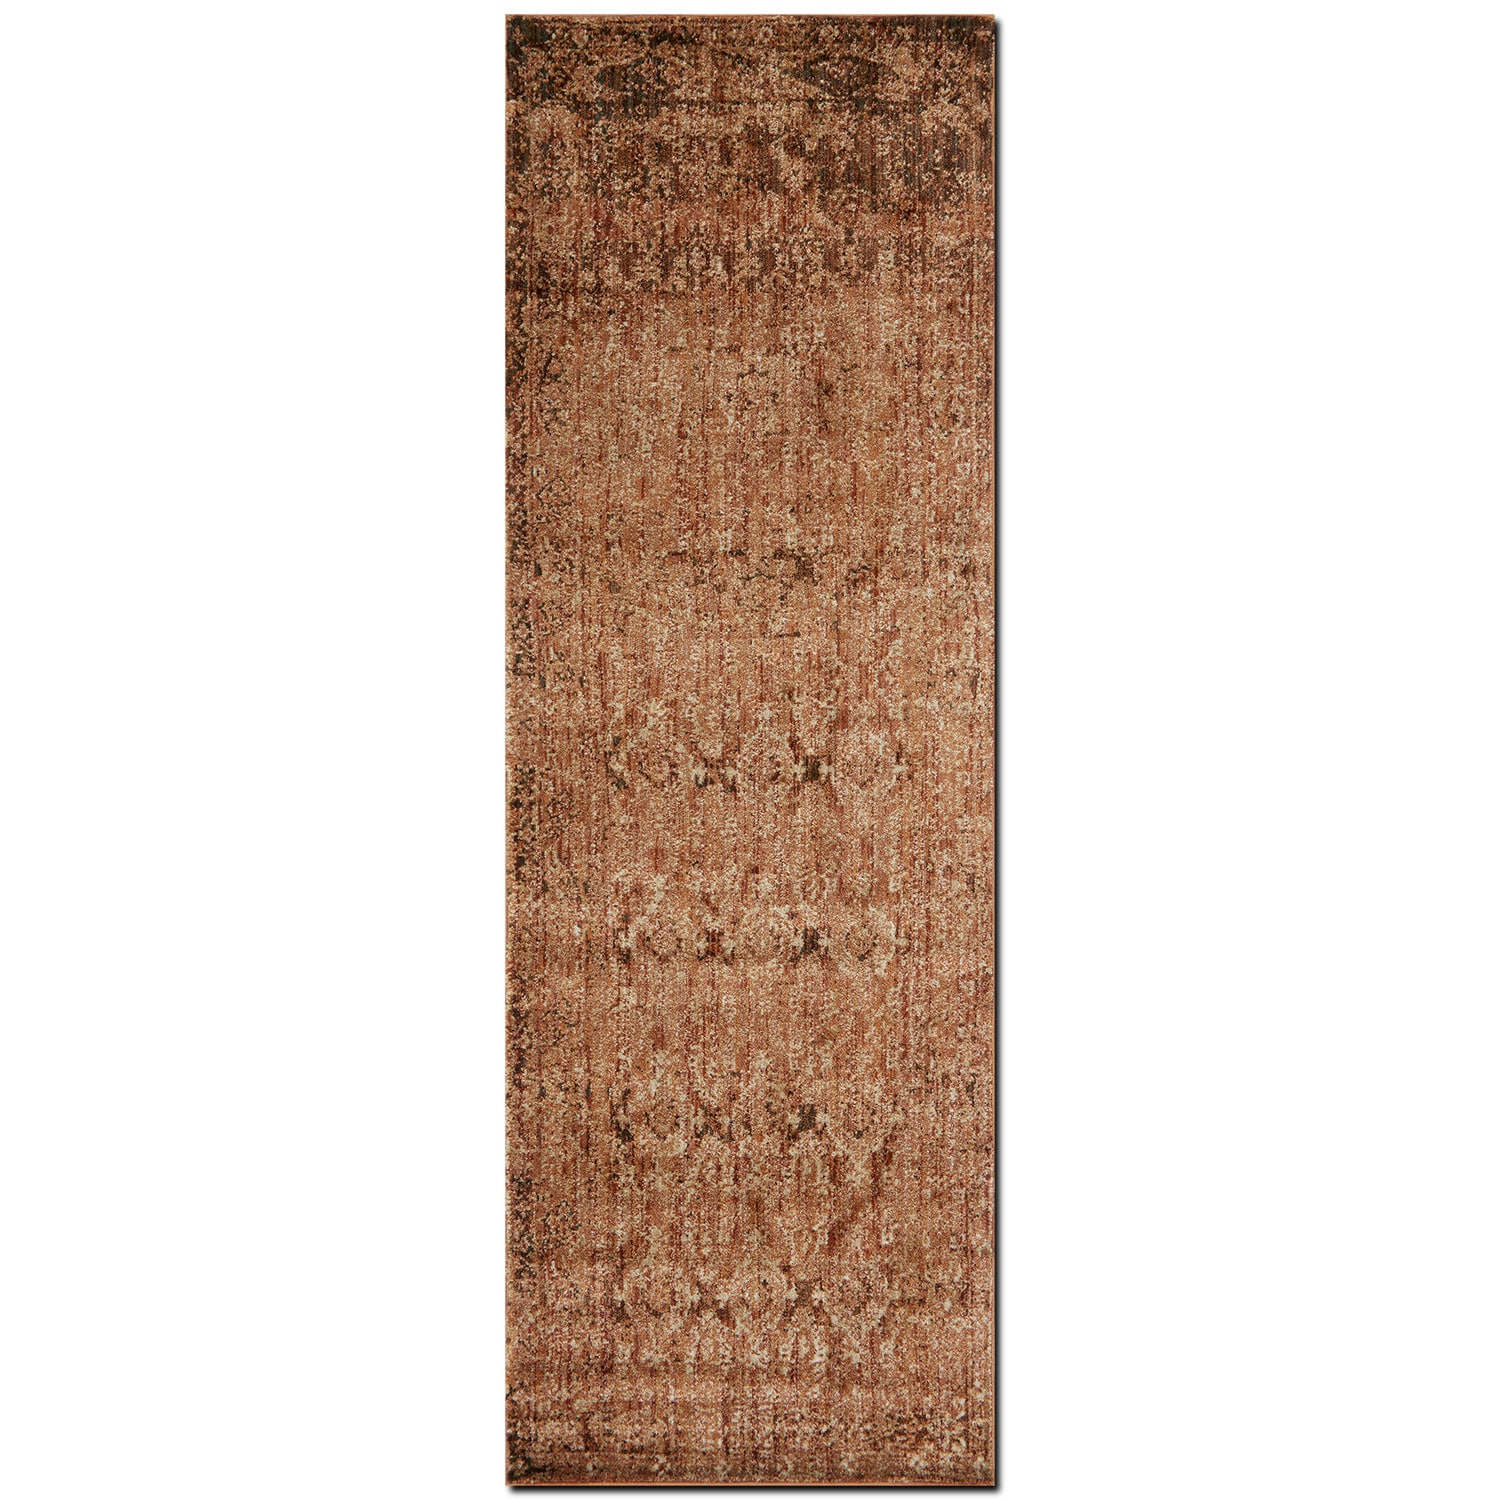 Kivi 3' x 10' Rug - Sand and Copper